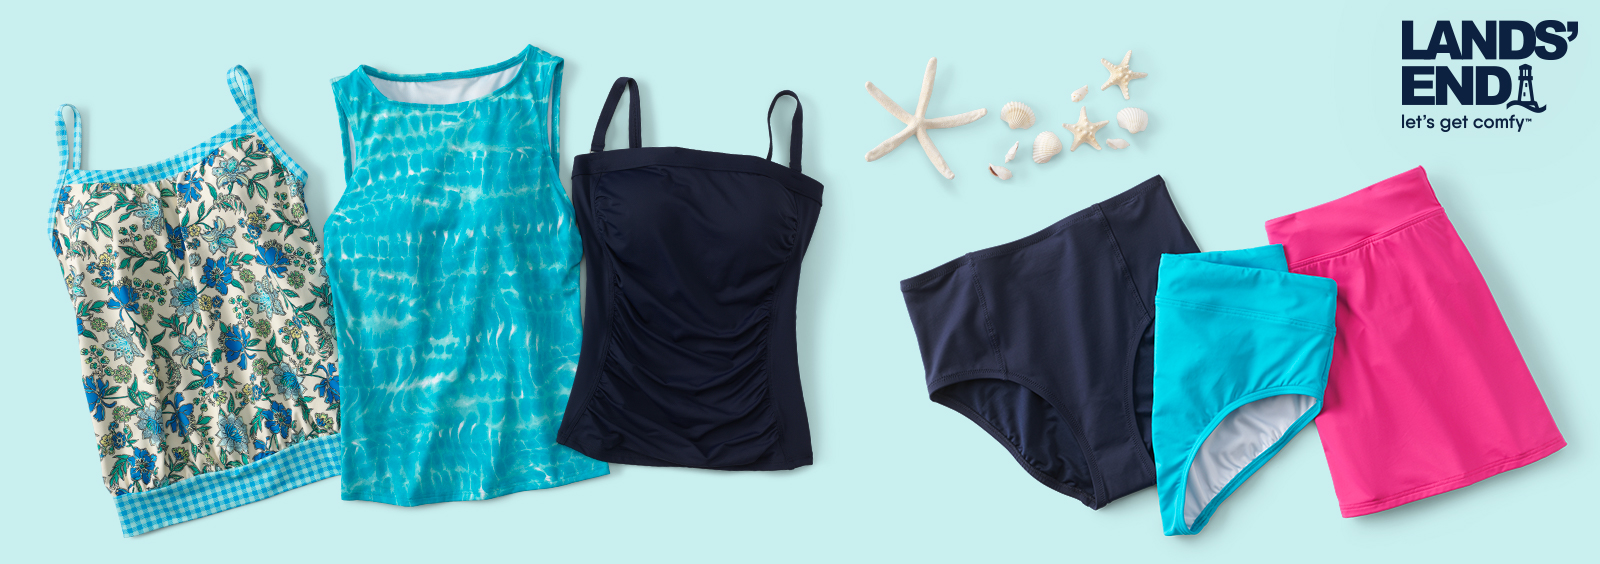 4 Best Petite Swimsuits to Wear This Summer